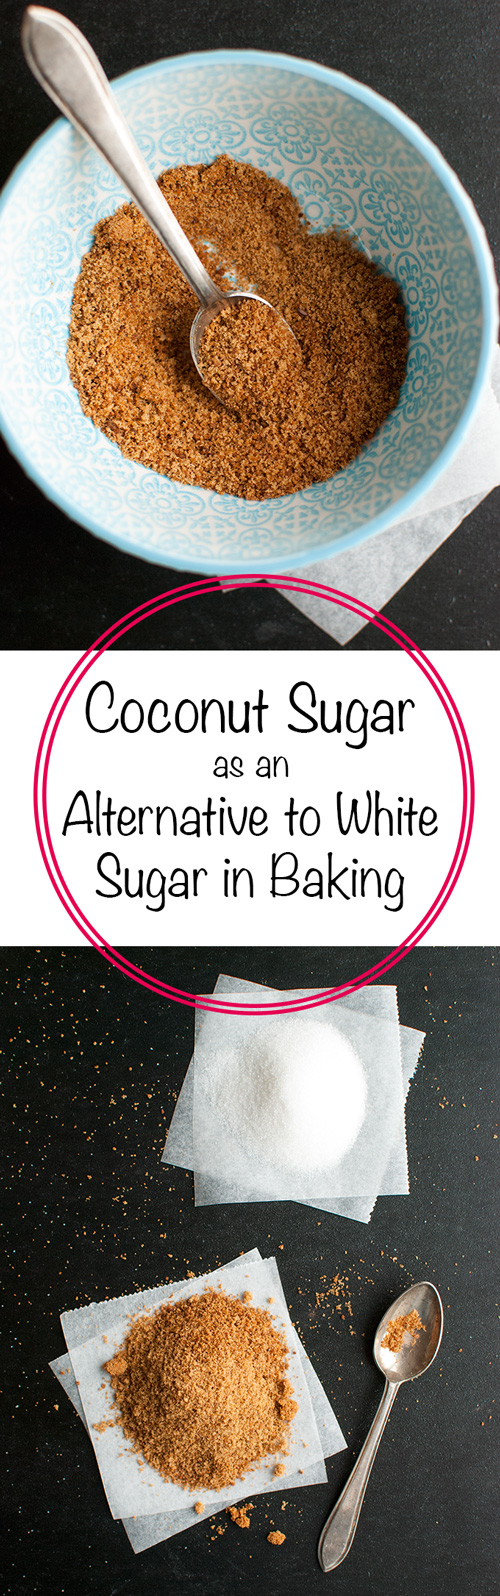 Coconut Sugar as an Alternative to White Sugar - This post explains everything you need to know about baking with coconut sugar! | thetoughcookie.com